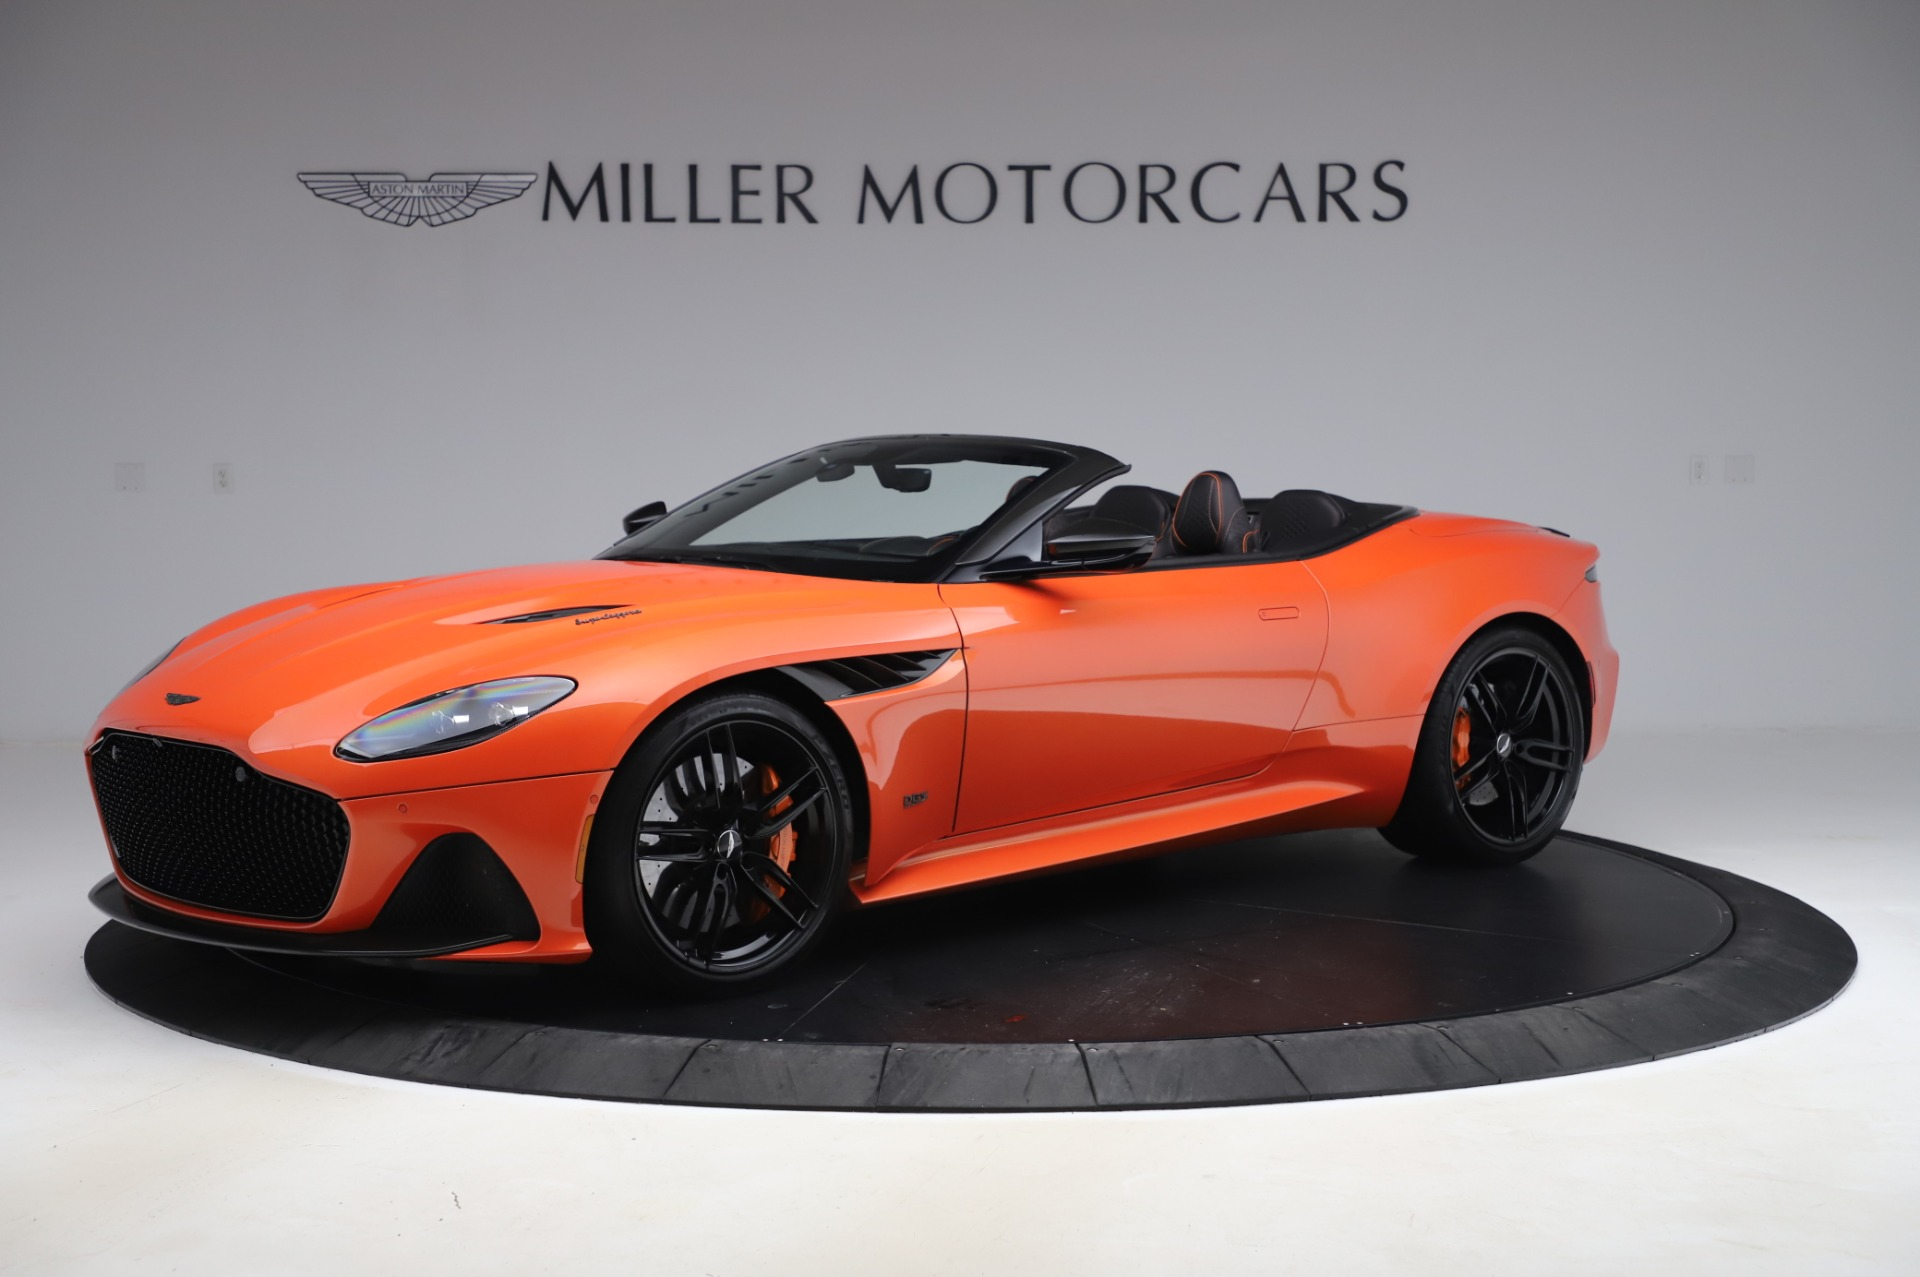 Used 2020 Aston Martin DBS Superleggera for sale $339,900 at Bentley Greenwich in Greenwich CT 06830 1